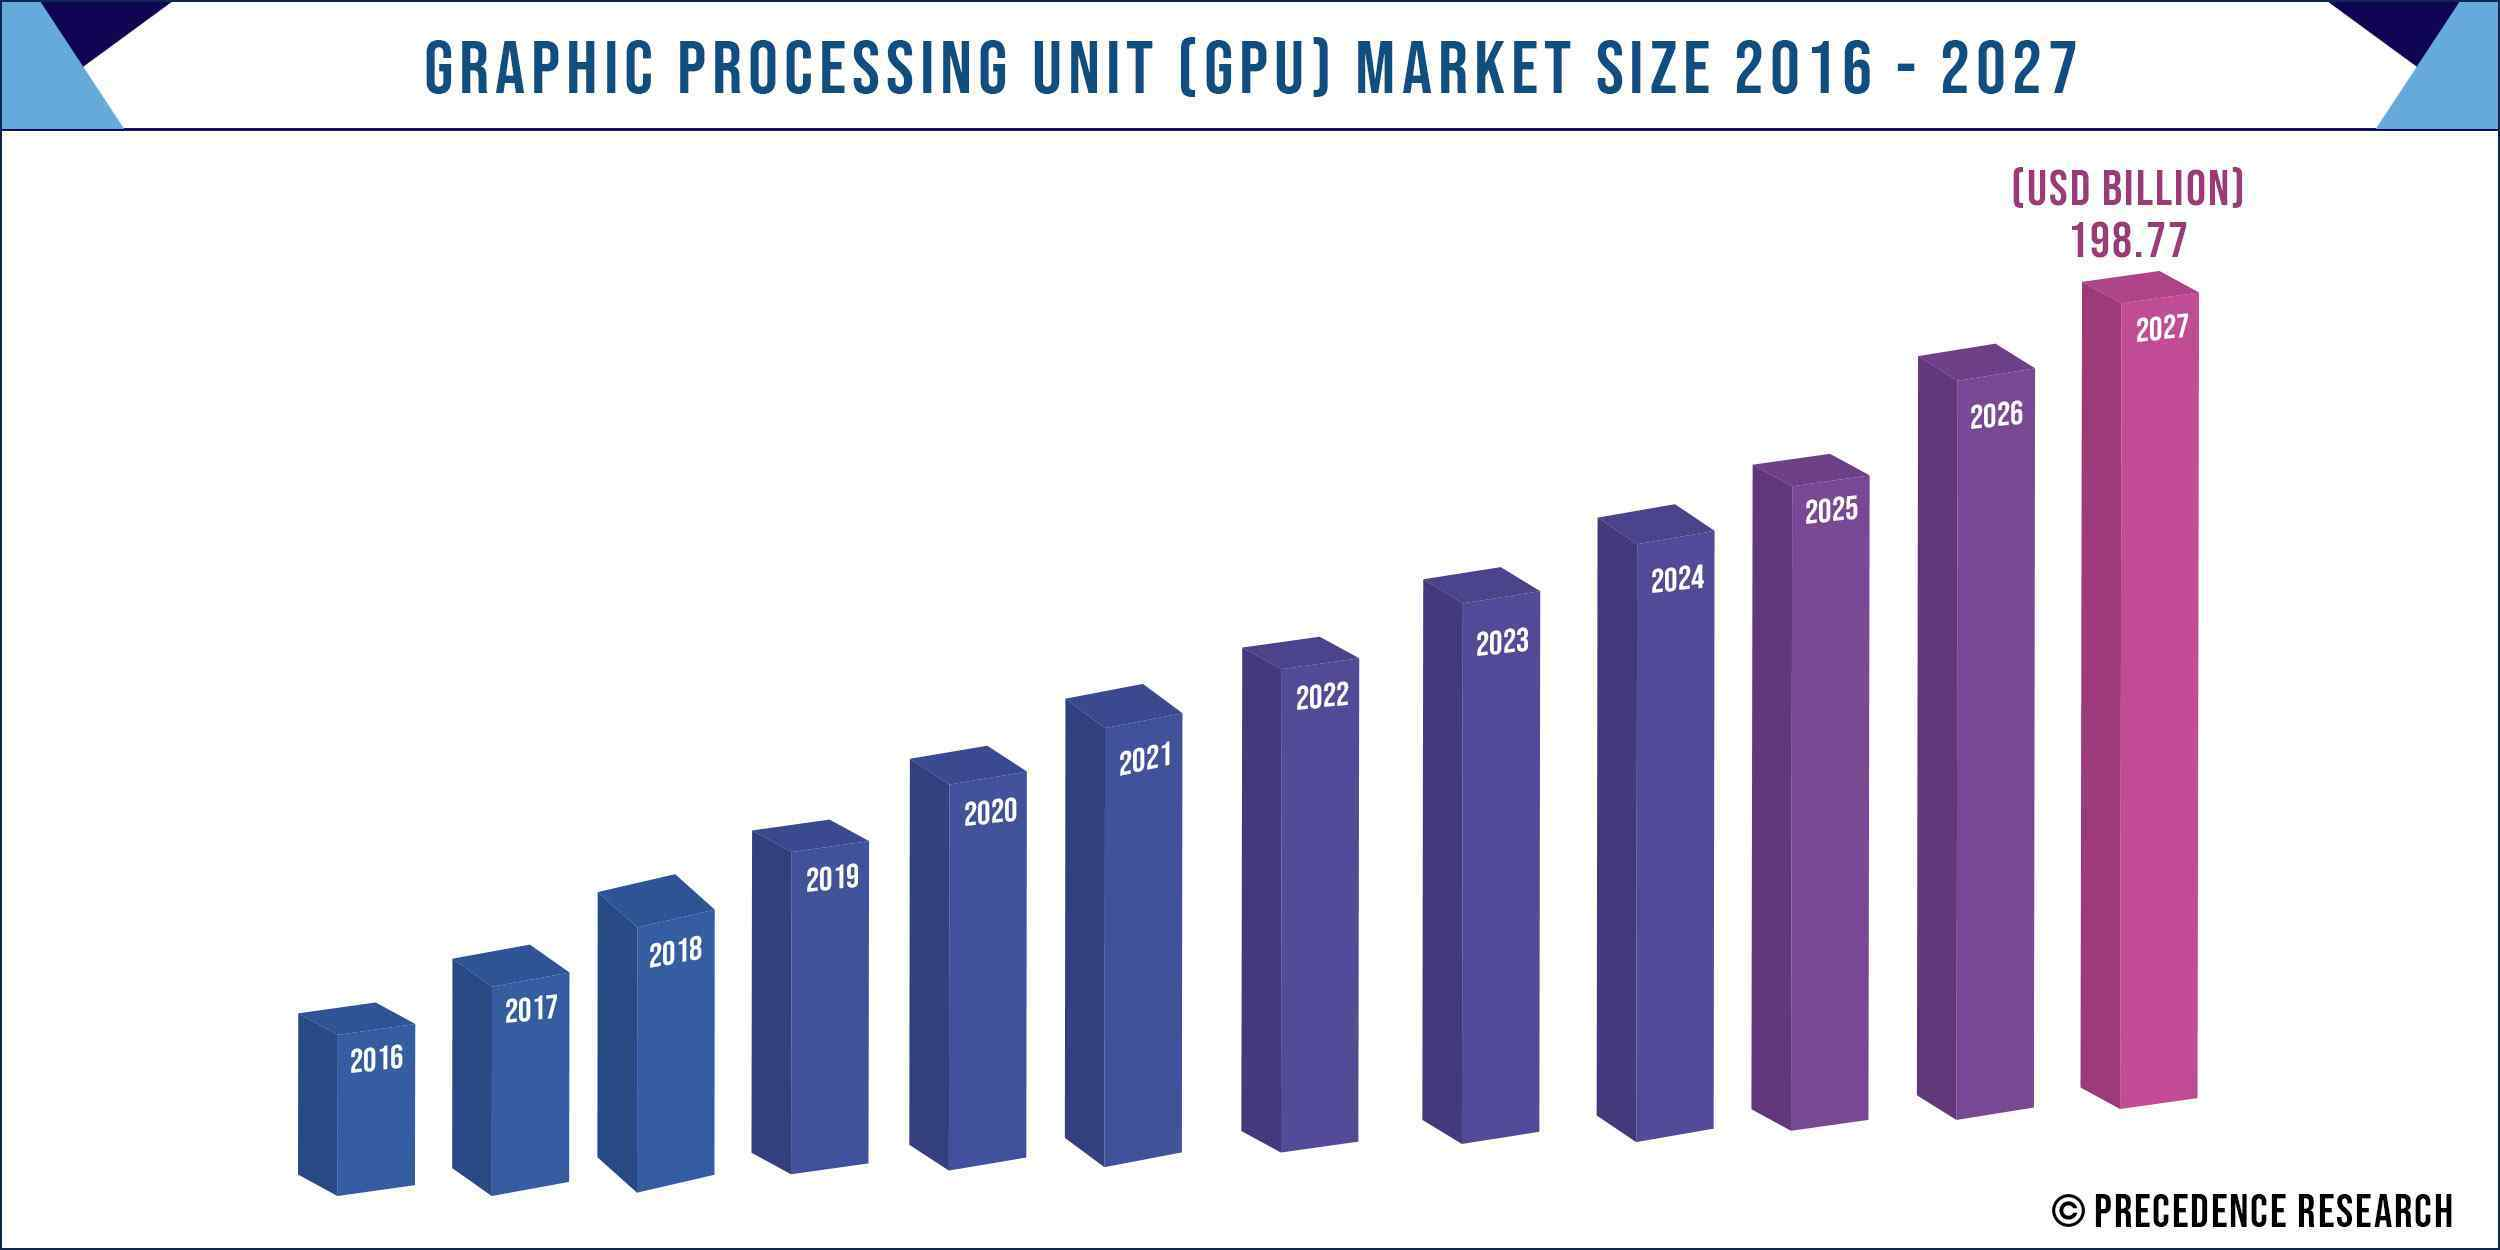 Graphic Processing Unit Market Size 2016 to 2027